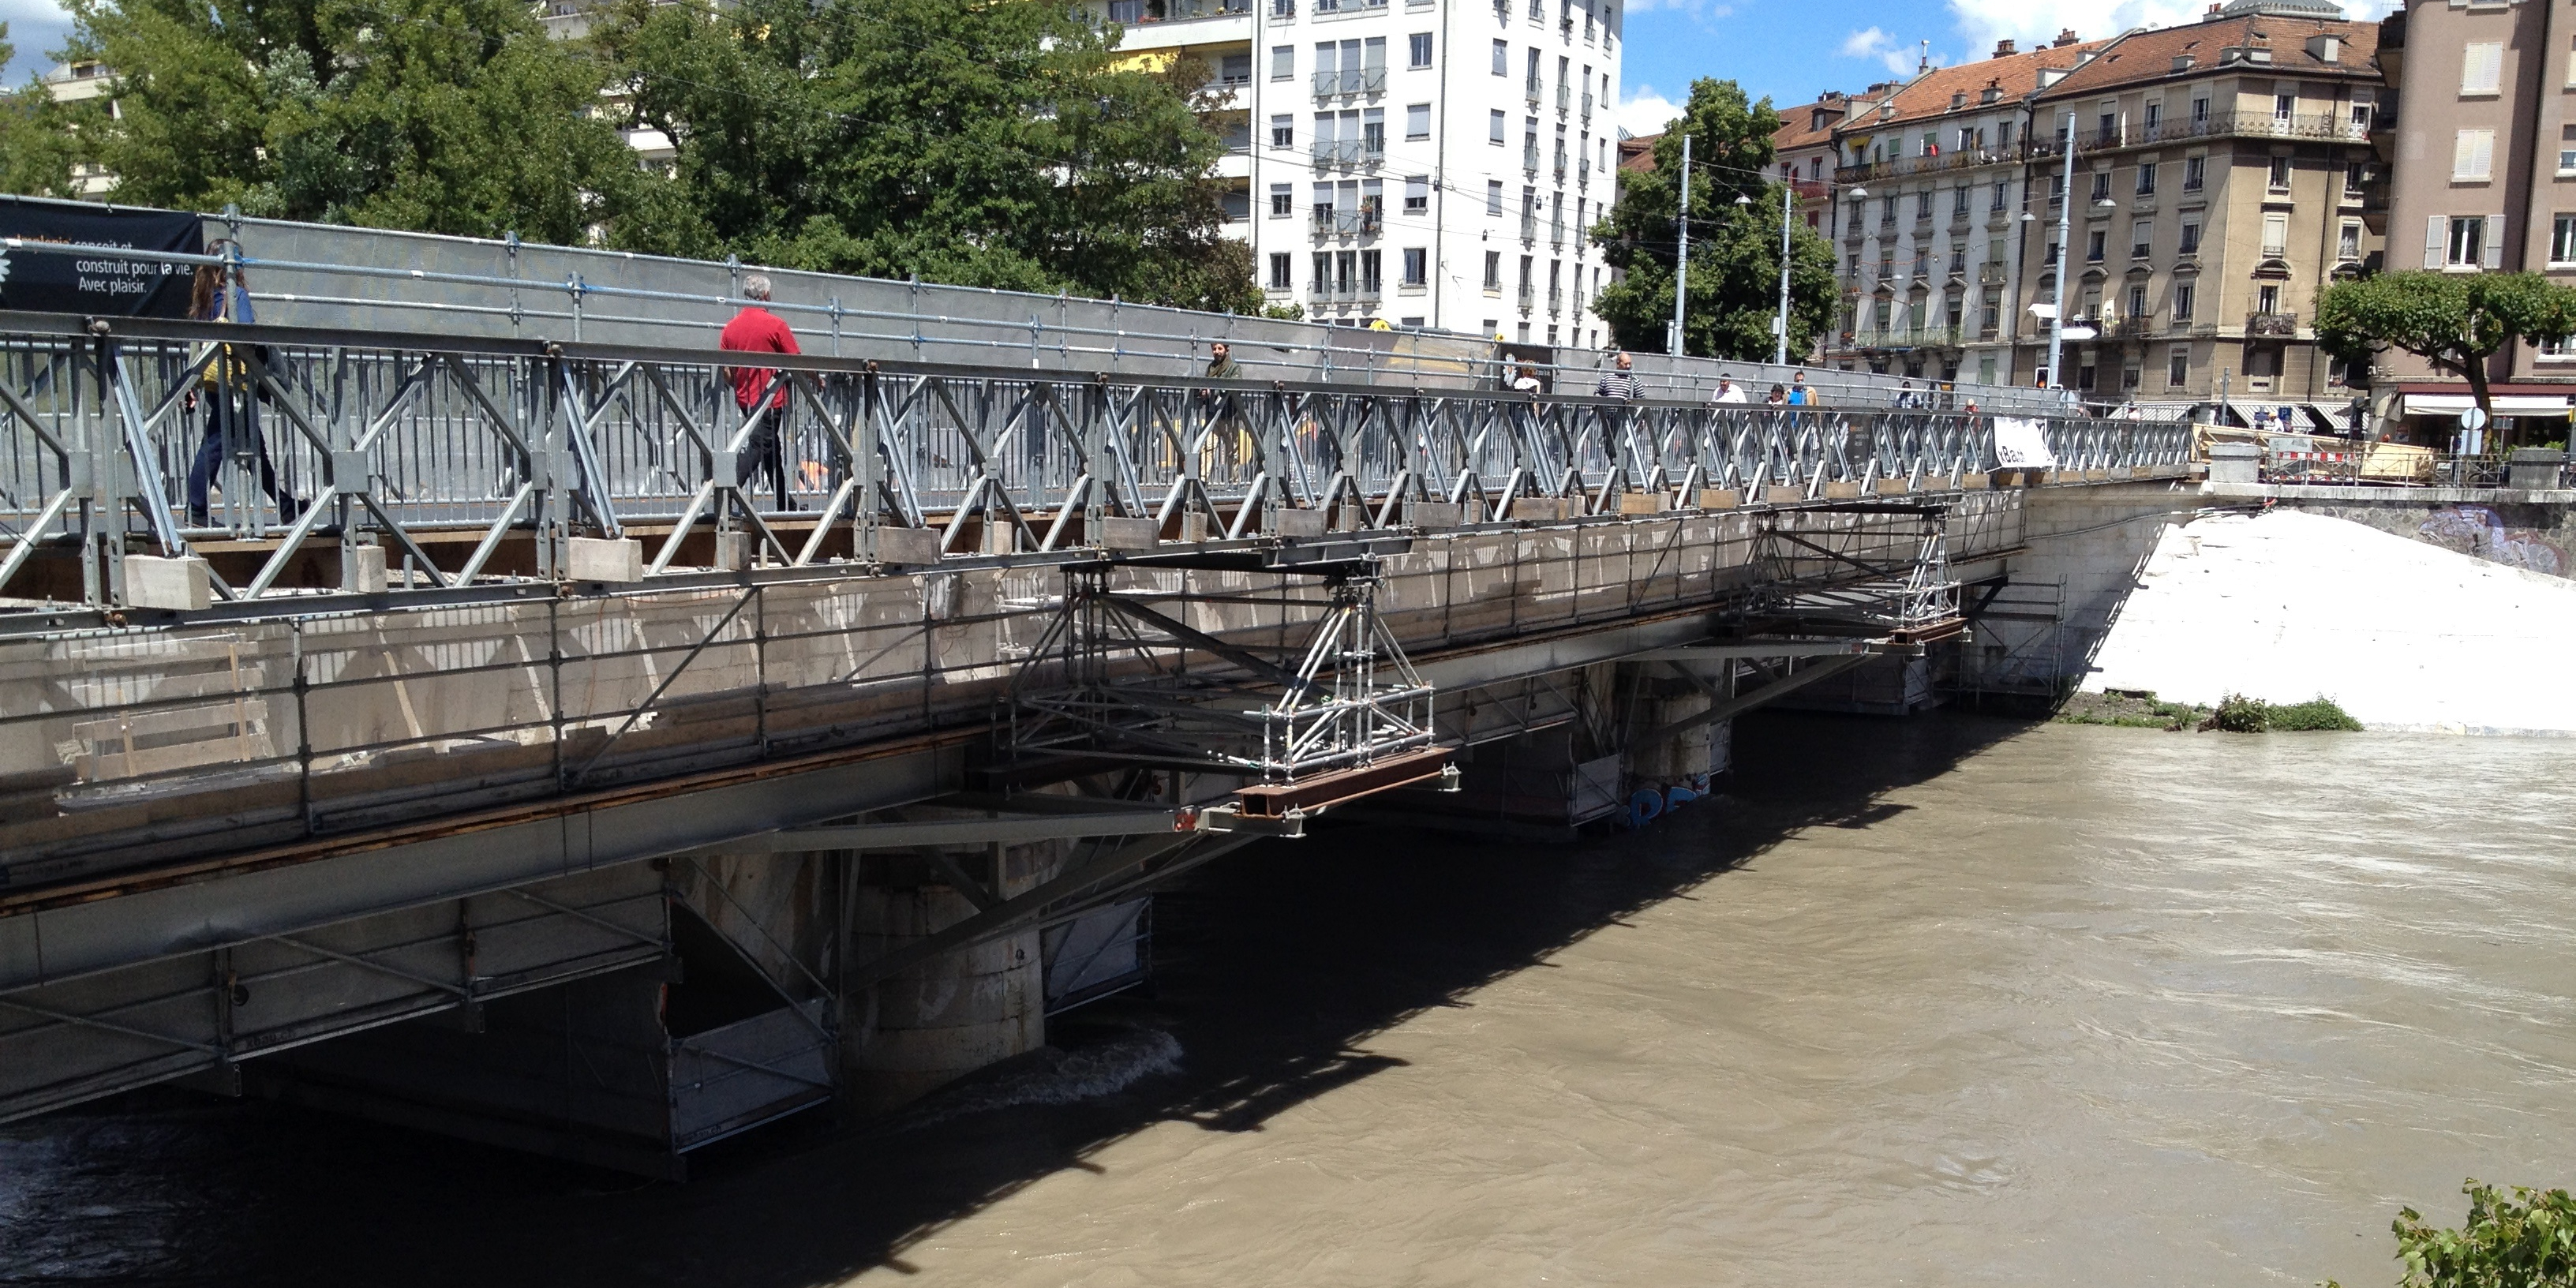 Réfection du Pont de Carouge à Genève (gestion du trafic en phase chantier)